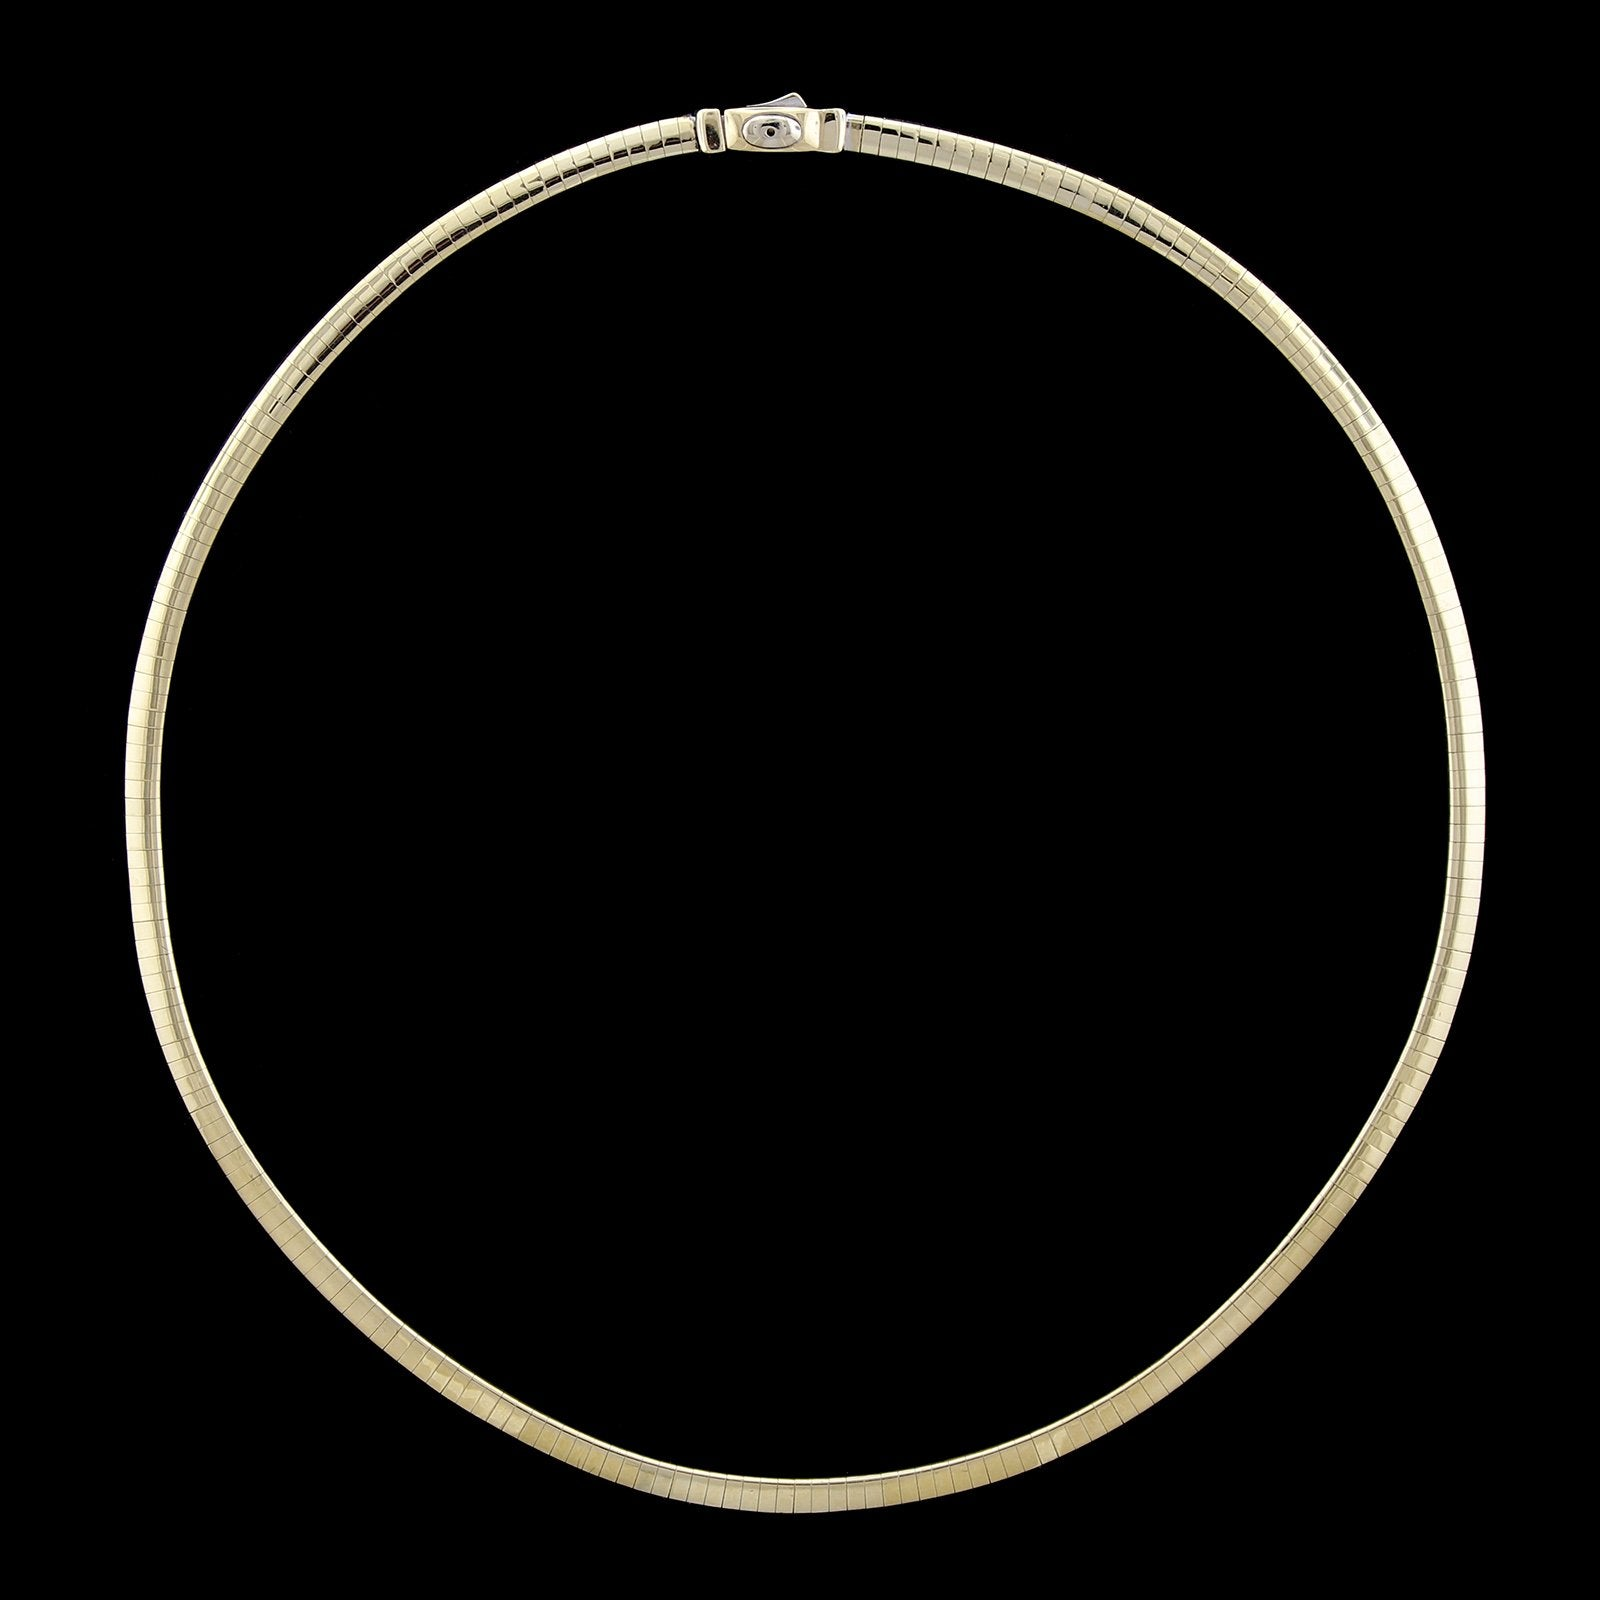 14K Yellow Gold Estate Omega Necklace